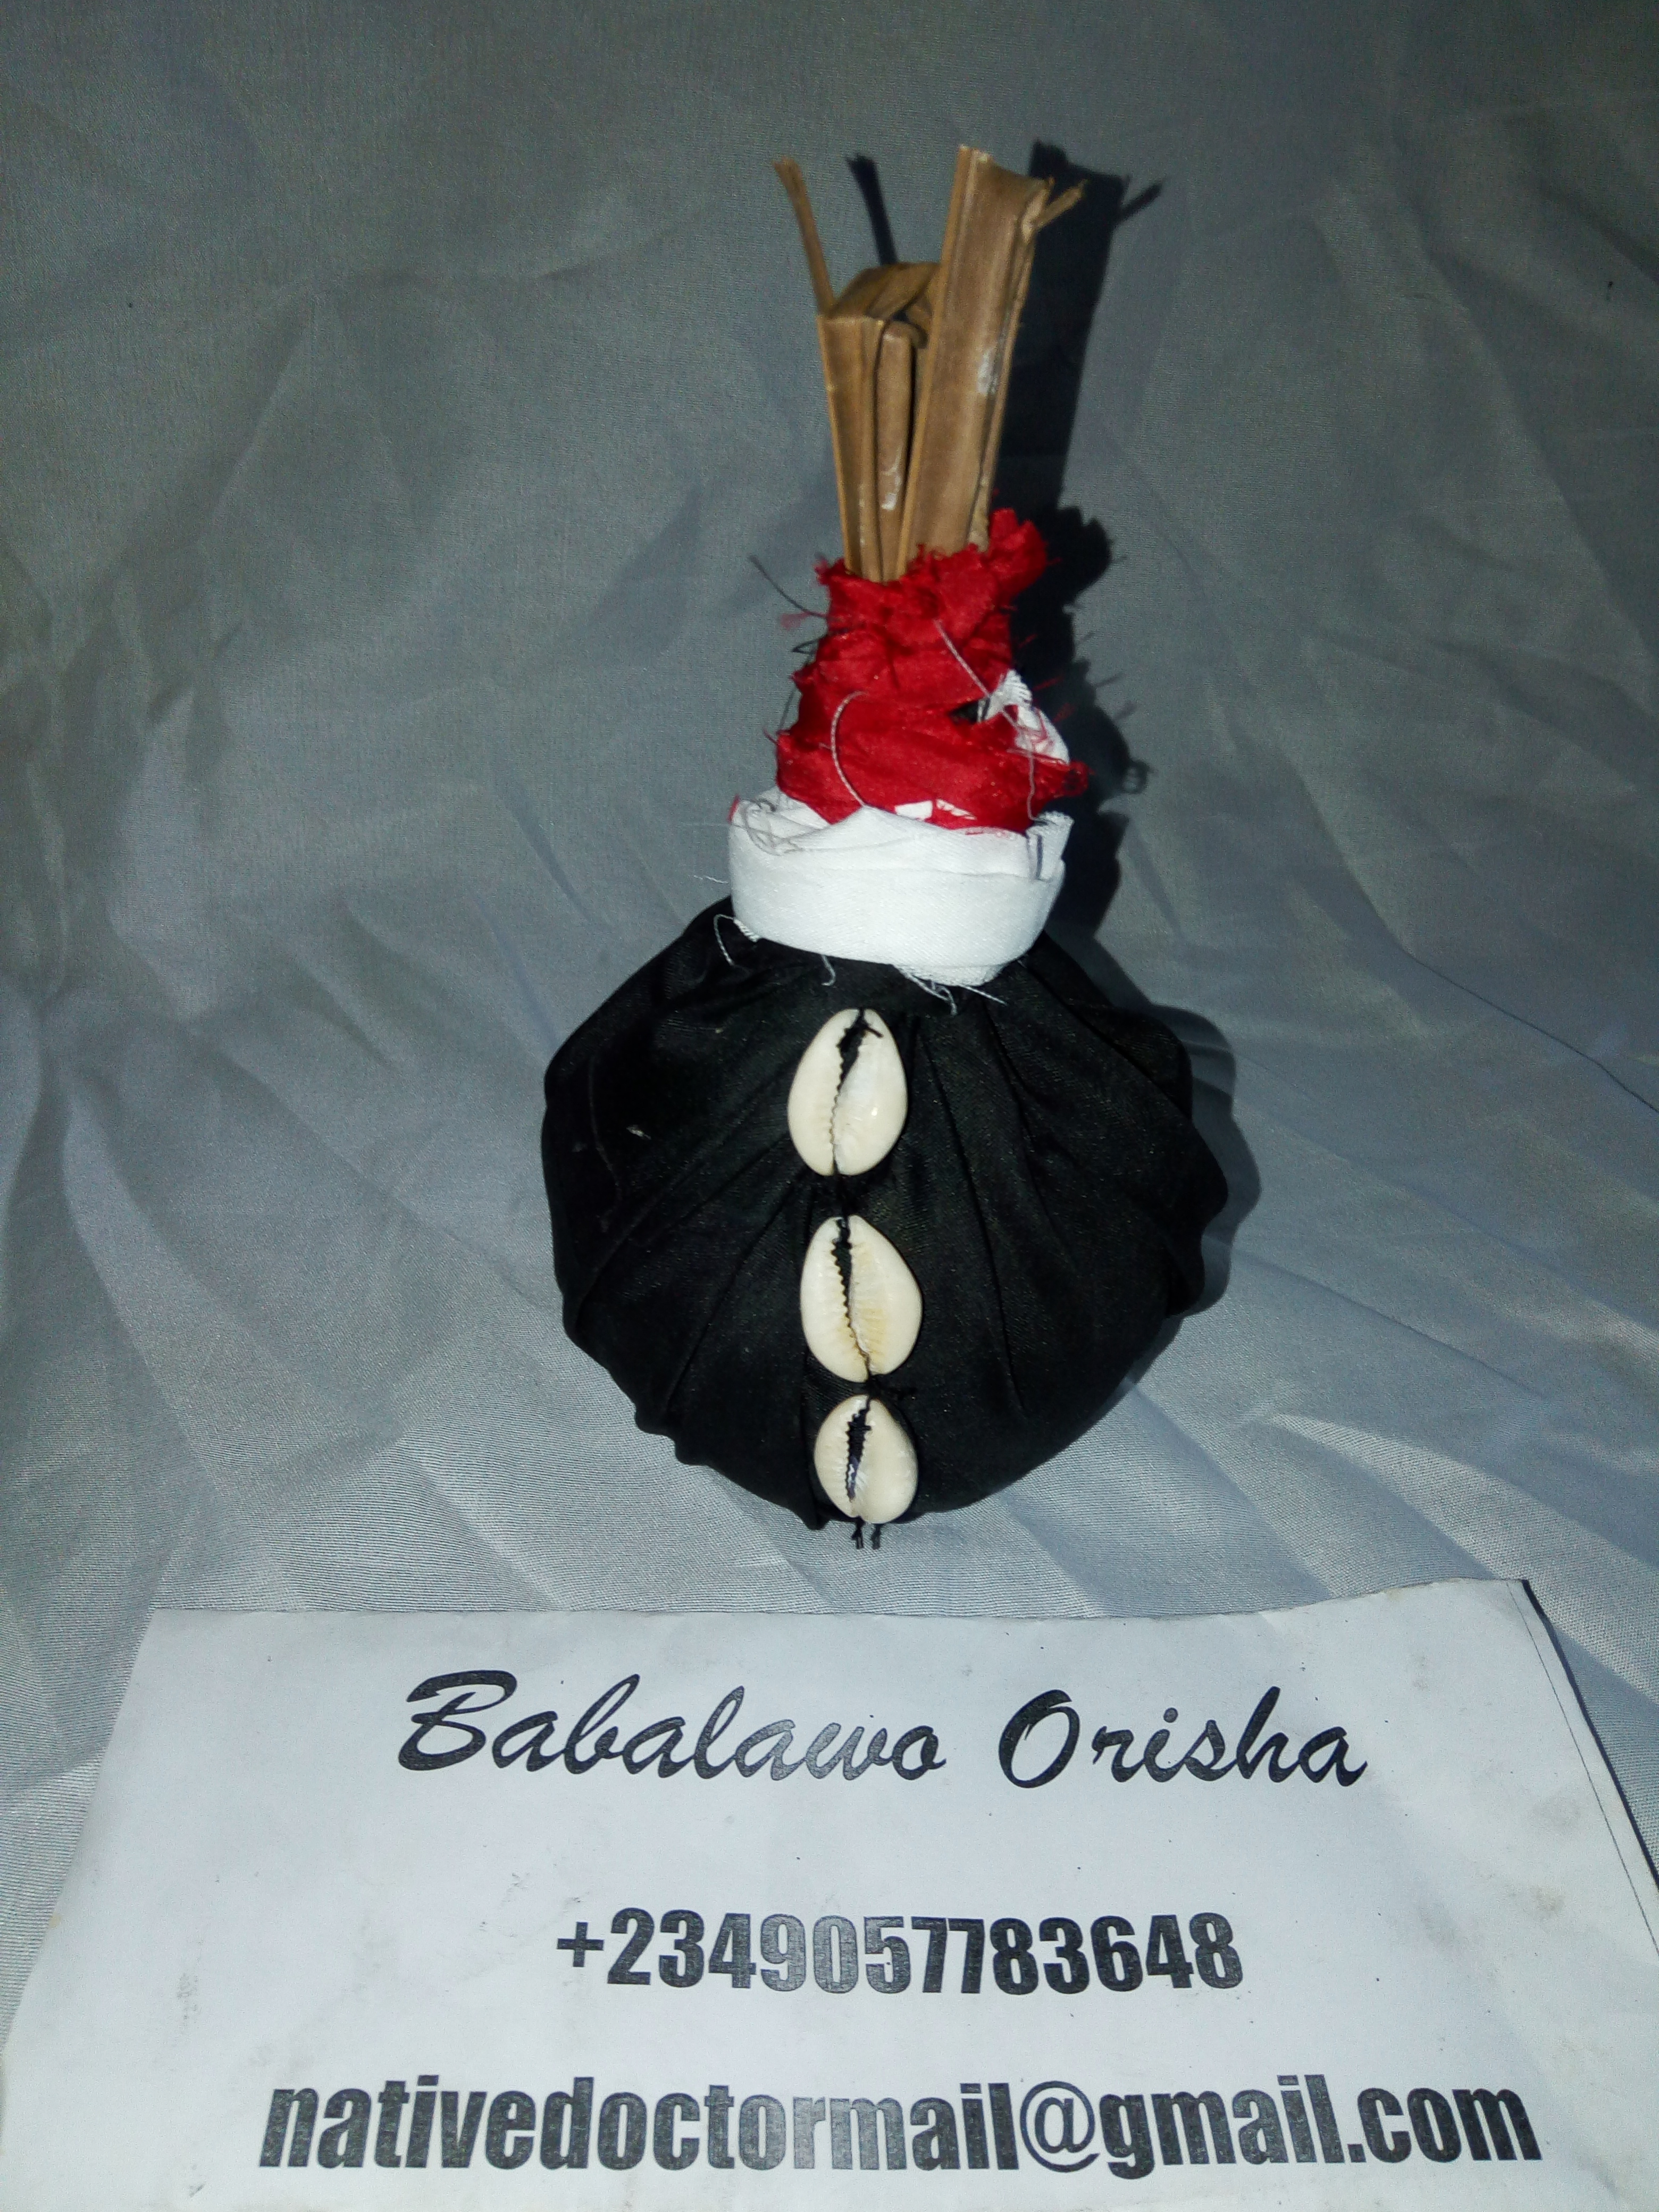 Witch, Witches Witchcraft Initiation, Wicca, Wiccan, Coven, Magick